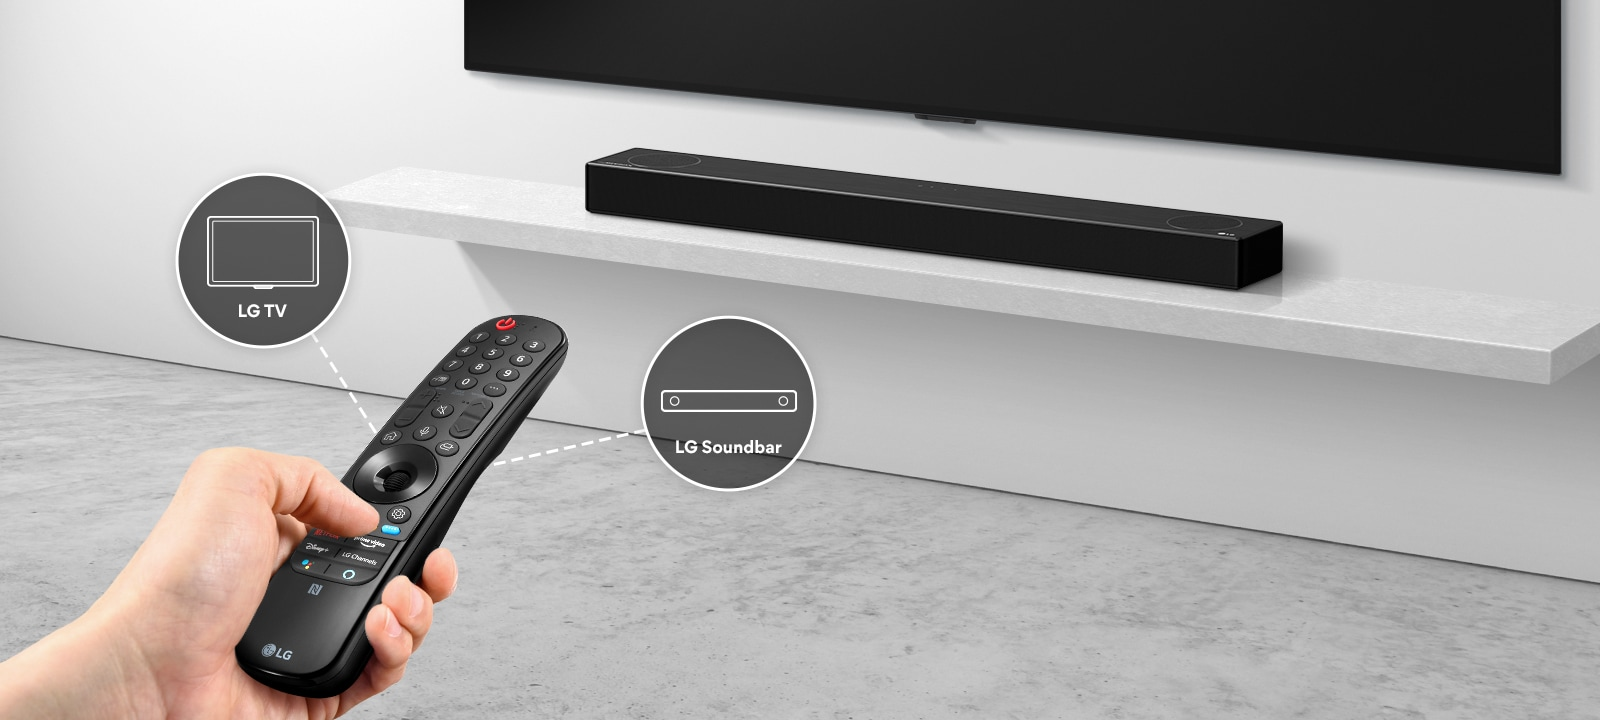 There is a remote control in someone's hand, controlling TV and soundbar in the back. There are icons of LG TV and LG Soundbar.